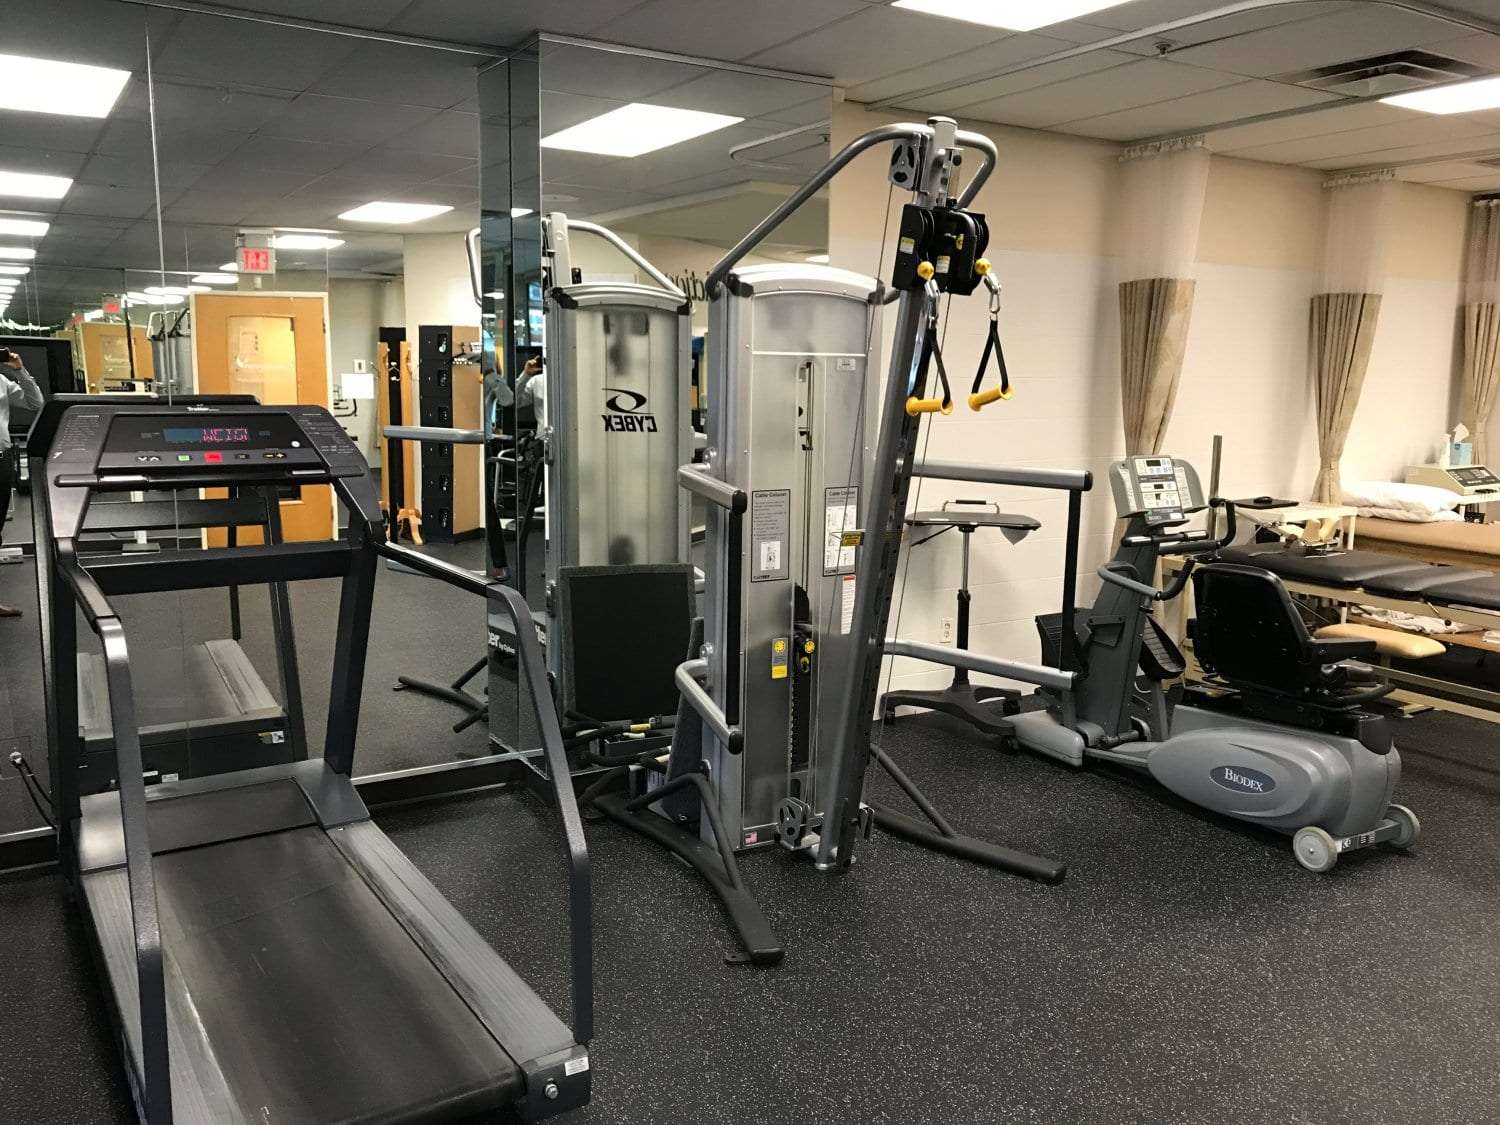 An image of equipment at our physical therapy clinic in Cliffside Park, New Jersey.